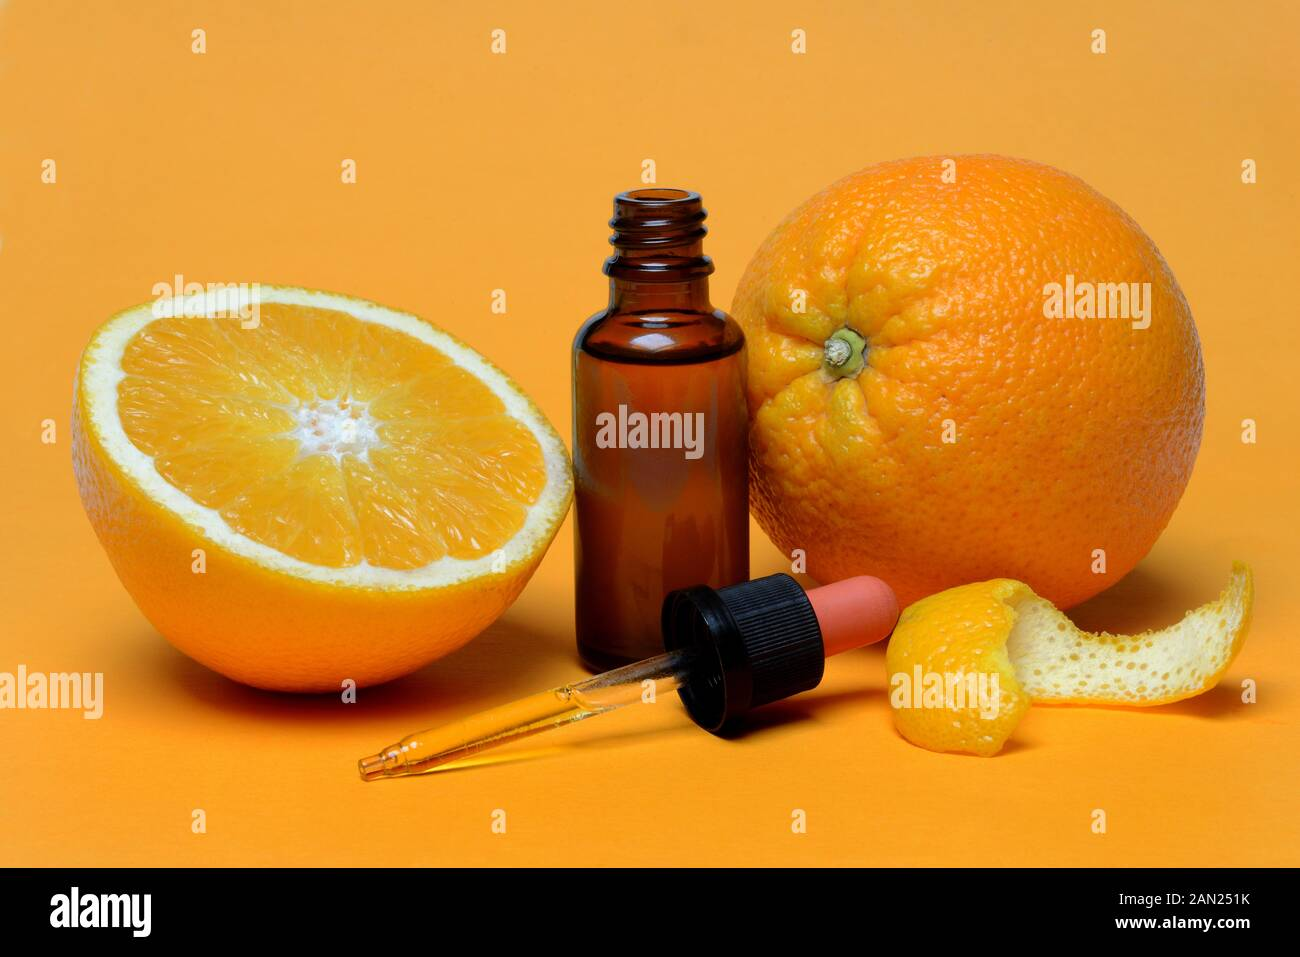 Oranges, halved with peel, orange oil in bottle with pipette, Germany Stock Photo